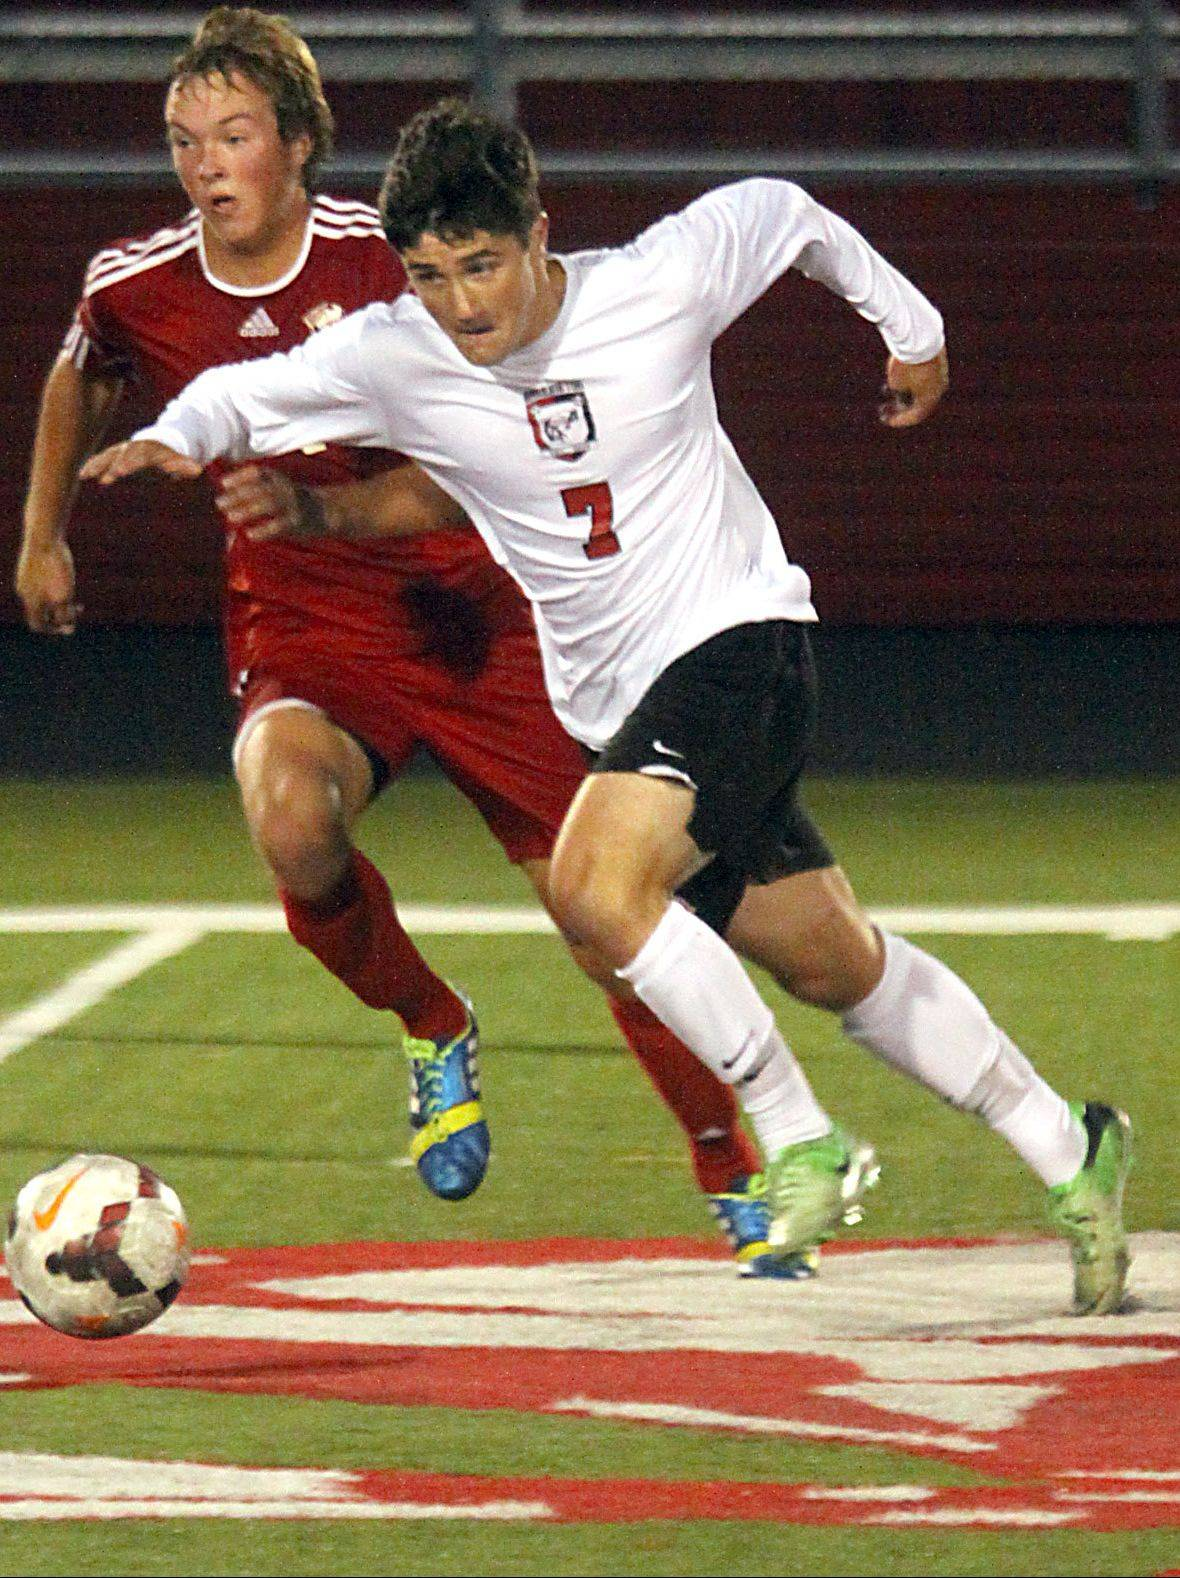 Barrington's Connor Hennelly, right, races Palatine's Gavin Falotico for control of the ball at Barrington on Monday night.